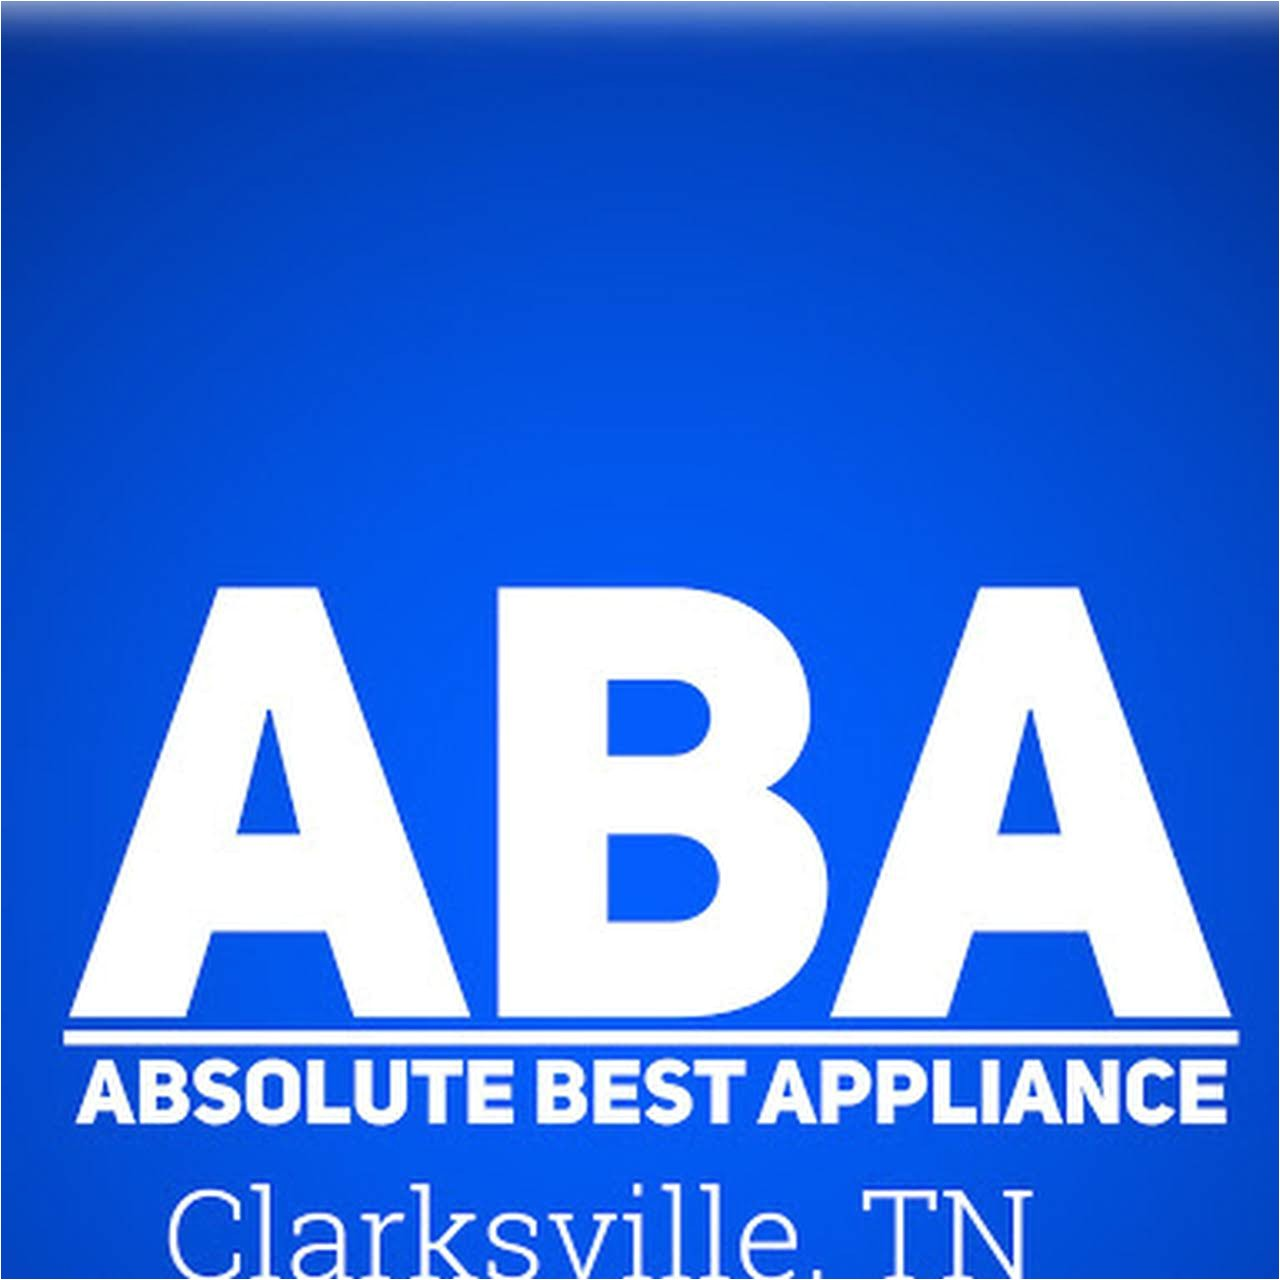 Appliance Repair Clarksville Tn Absolute Best Appliance Appliance Repair Service In Clarksville